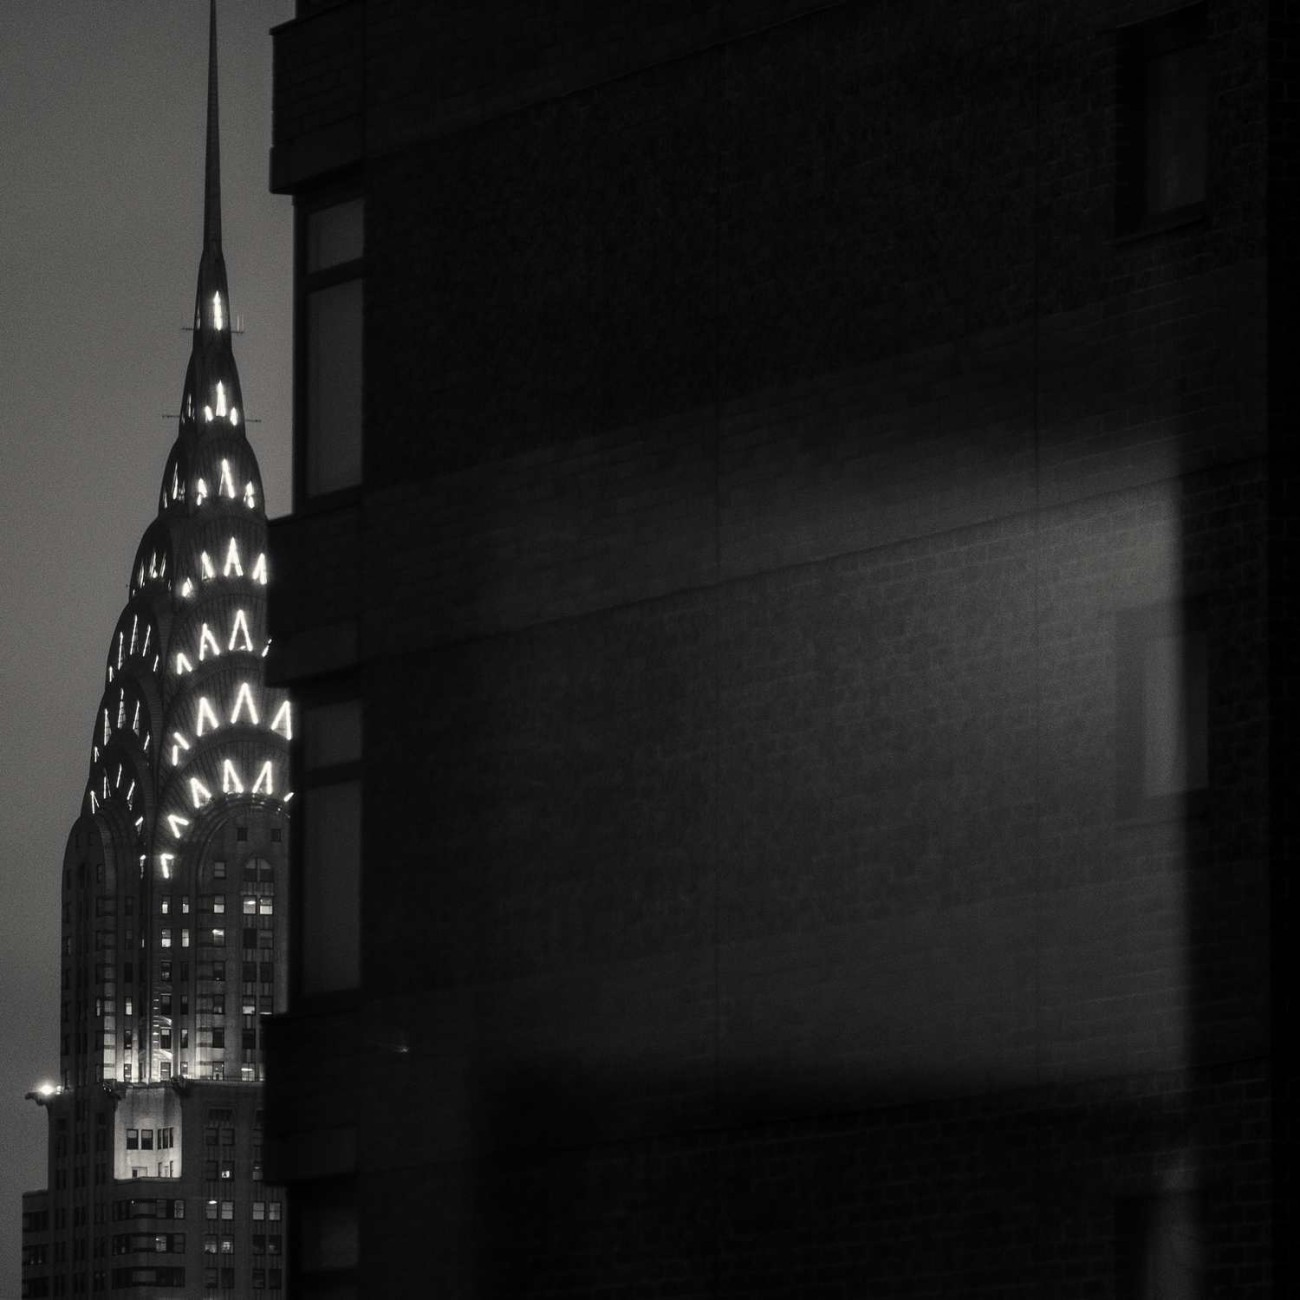 Top of the Chrysler Building at night, NY, 2015